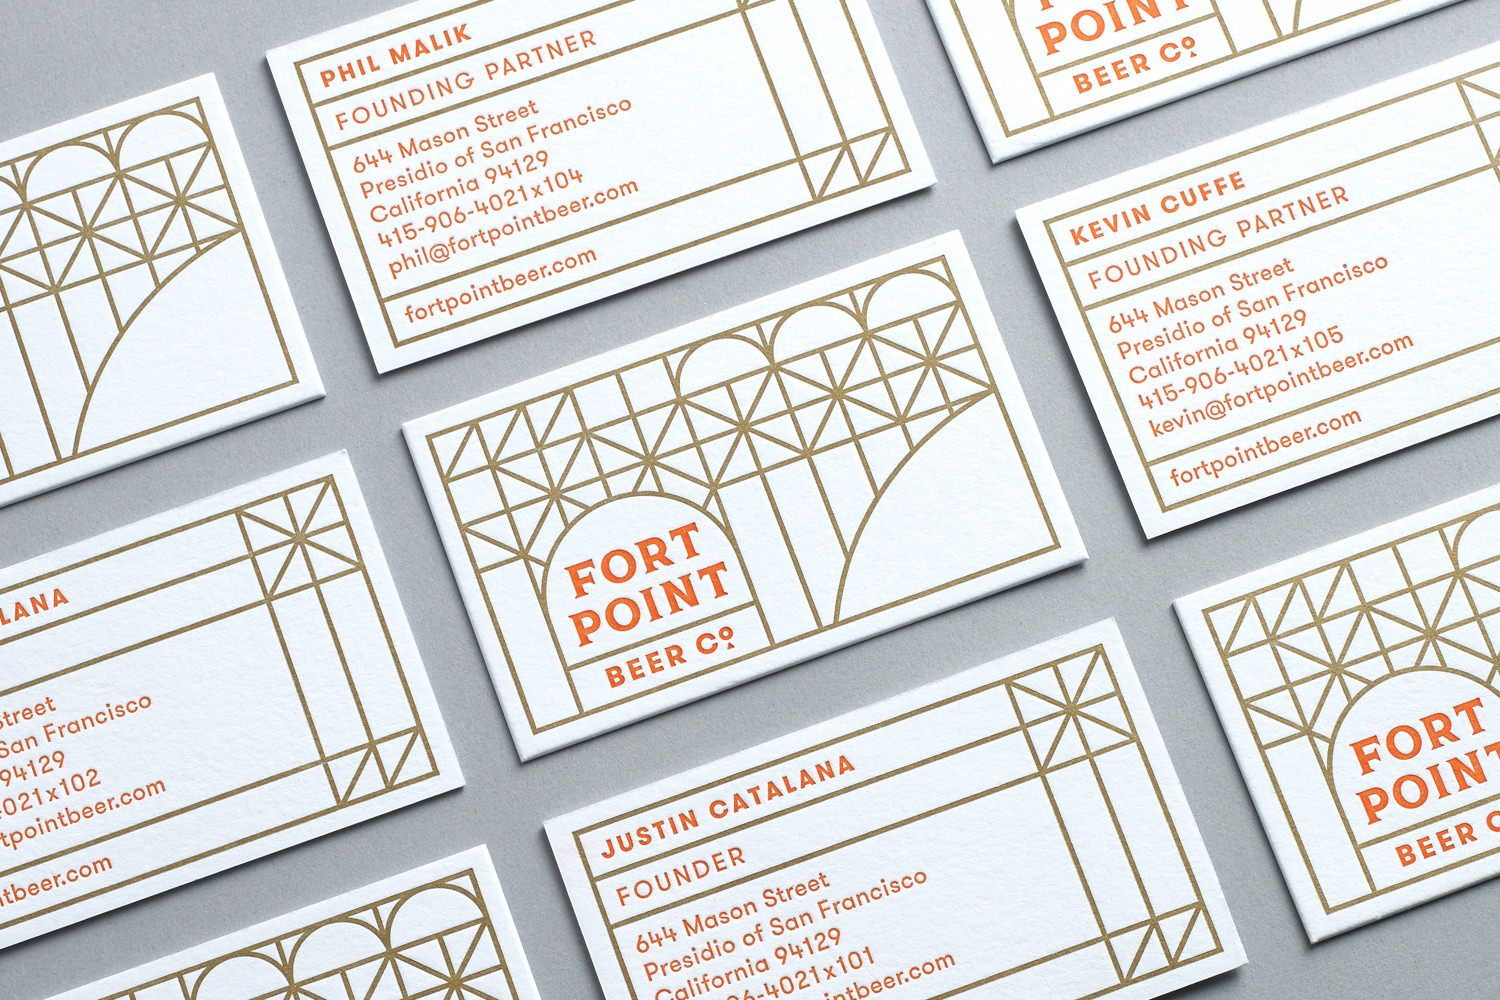 Business card design by Manual for Fort Point craft brewery ...